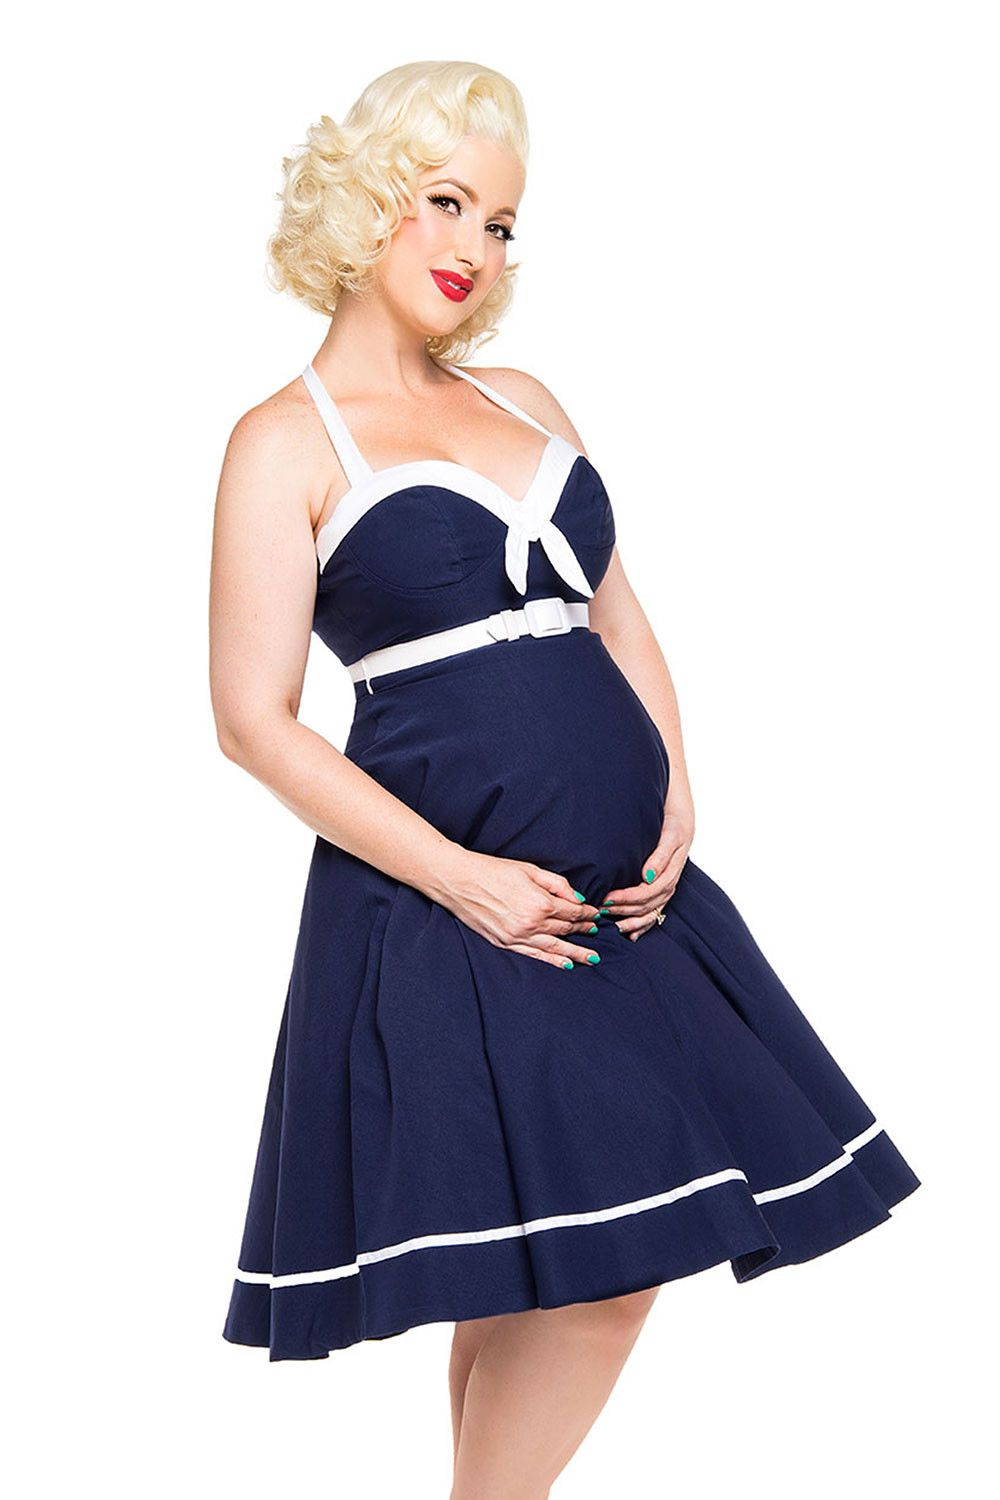 Pinup couture maternity friendly sailor swing dress in navy pinup couture maternity friendly sailor swing dress in navy ombrellifo Gallery